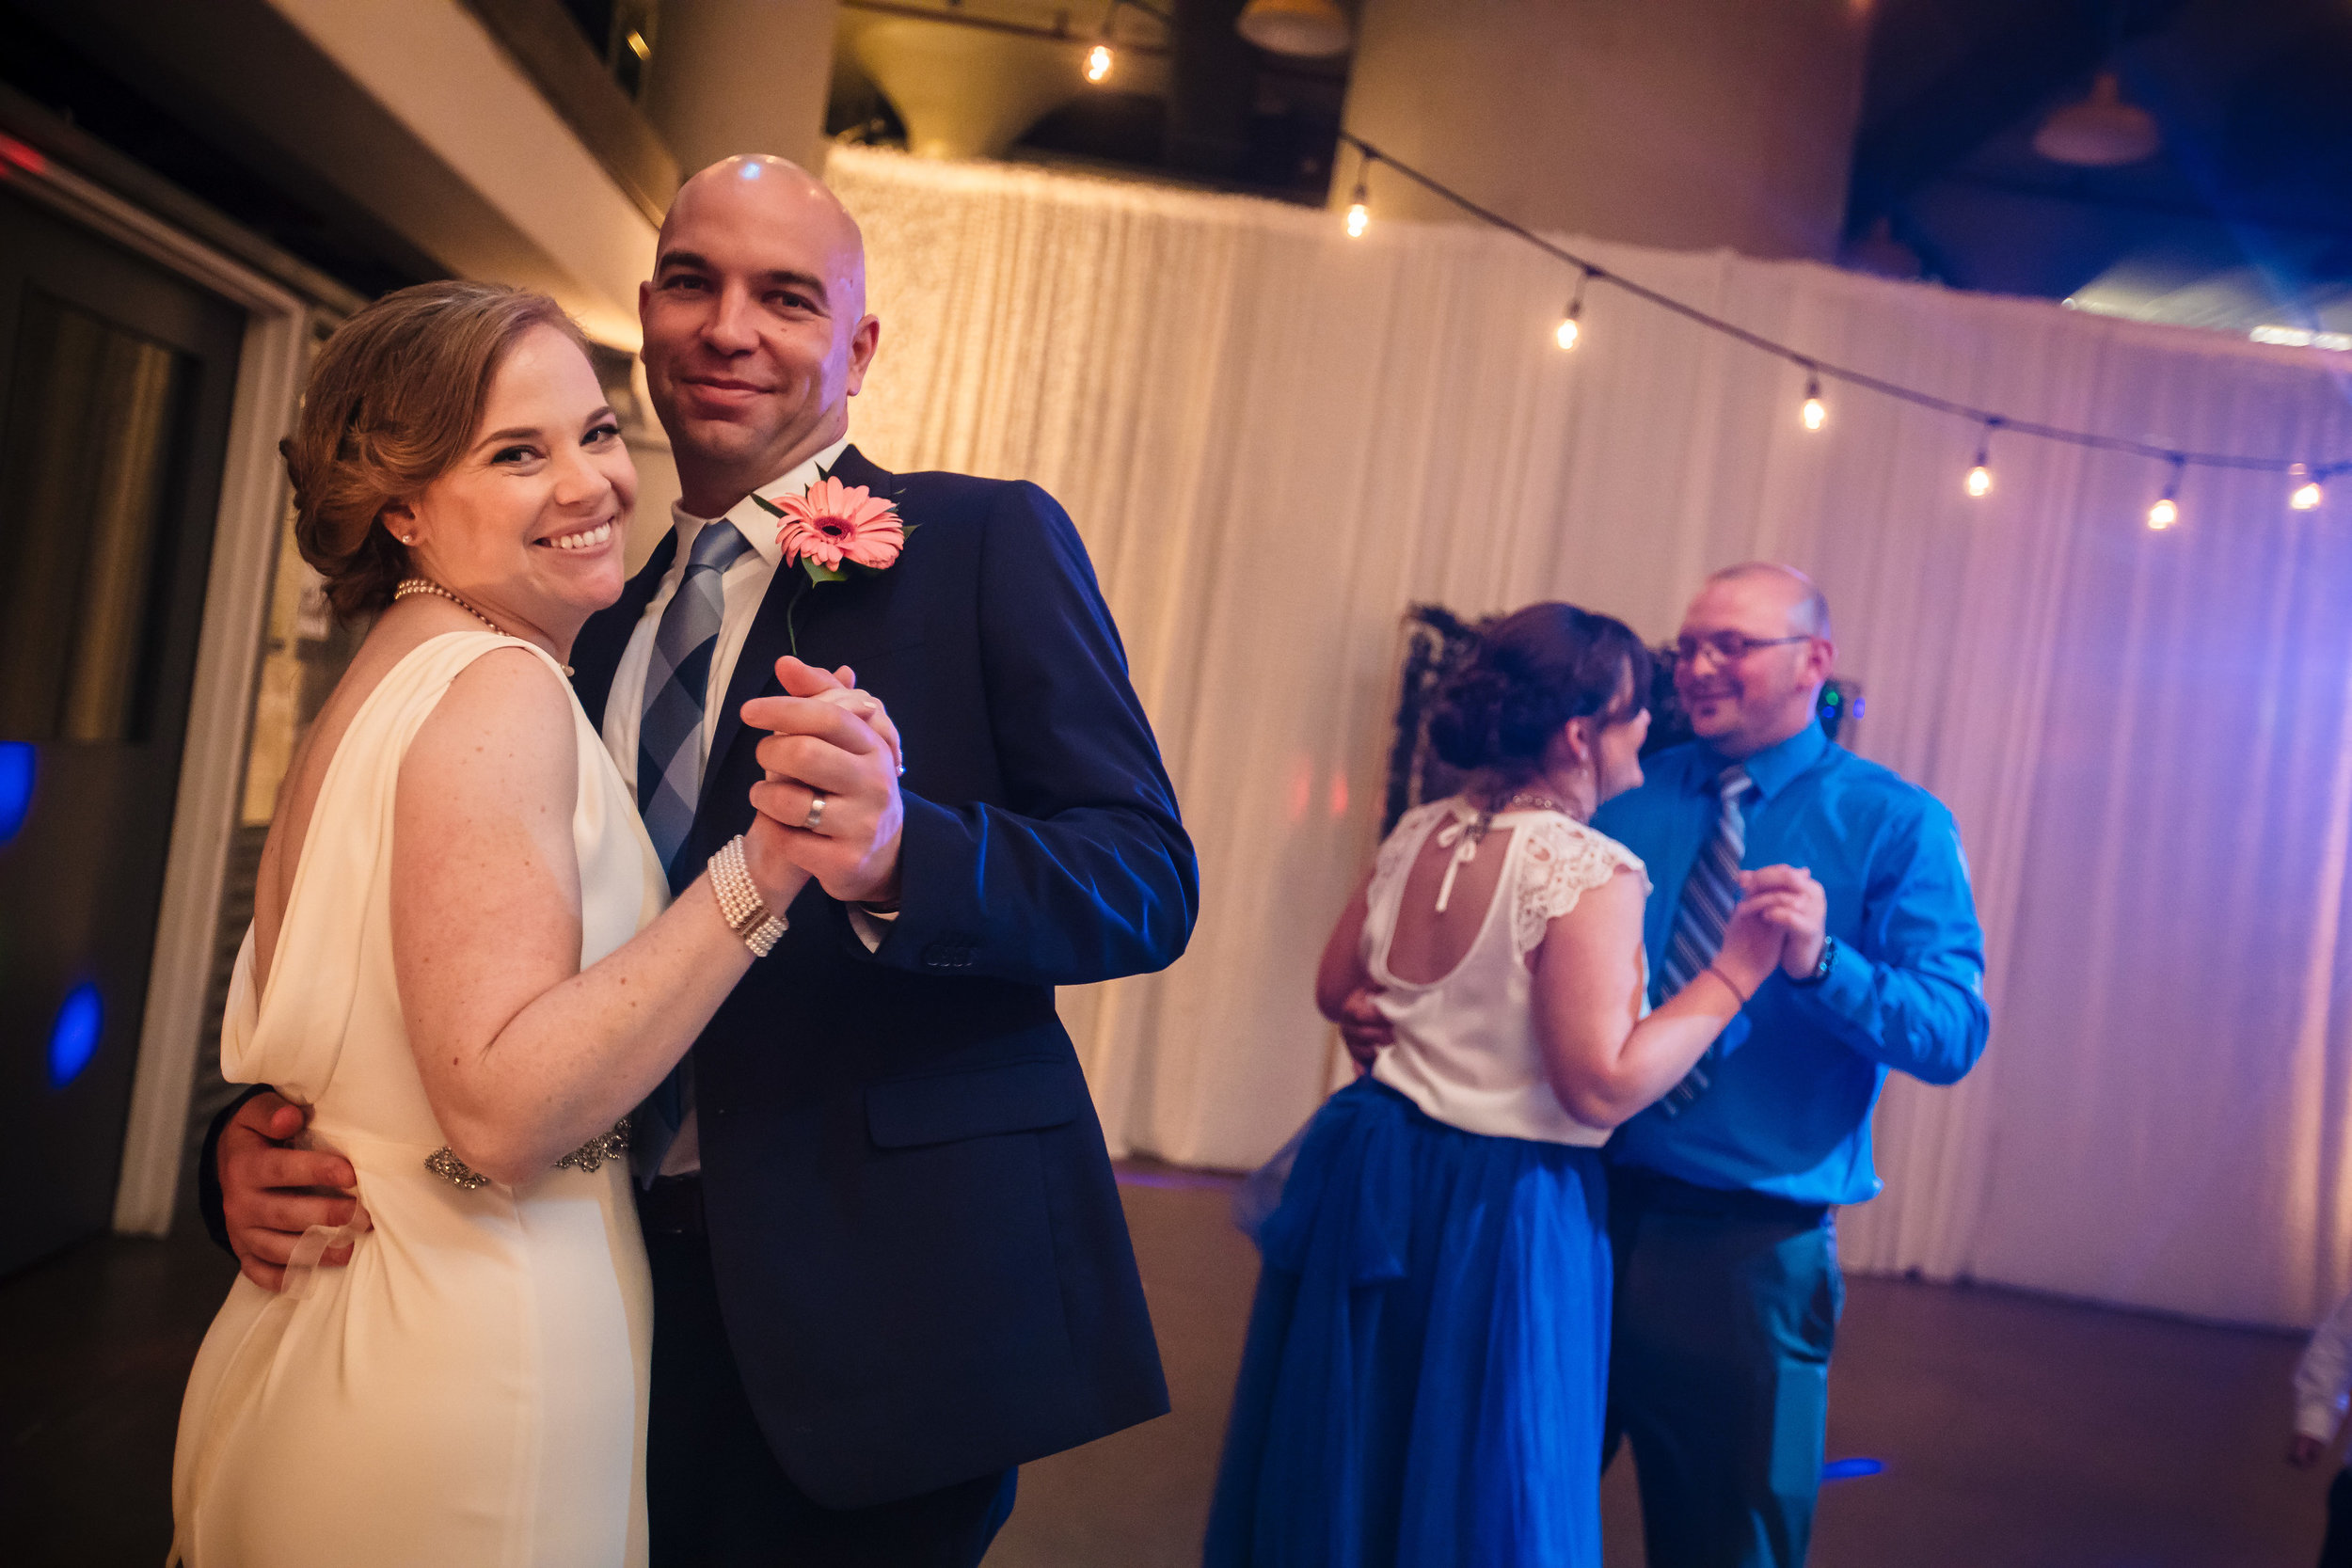 brielle-davis-events-torpedo-factory-wedding-reception-bride-and-groom-dancing-photography-by-brea.jpg